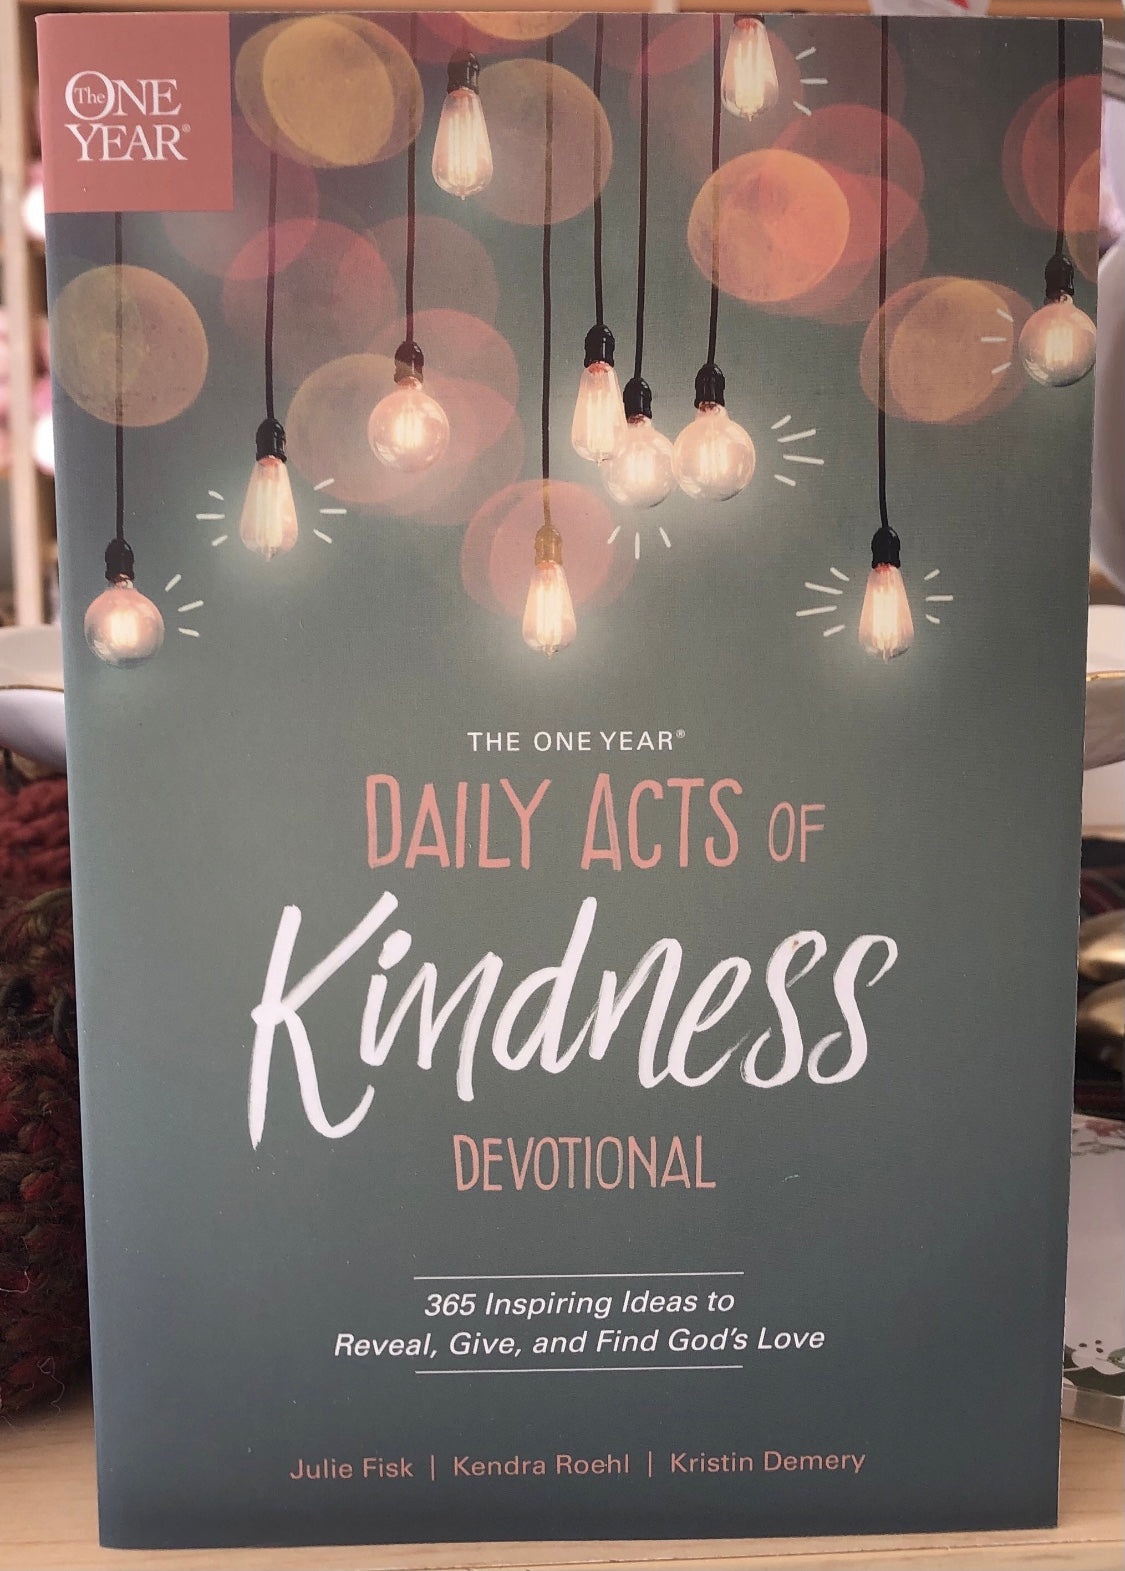 The One Year - Daily Acts of Kindness Devotional